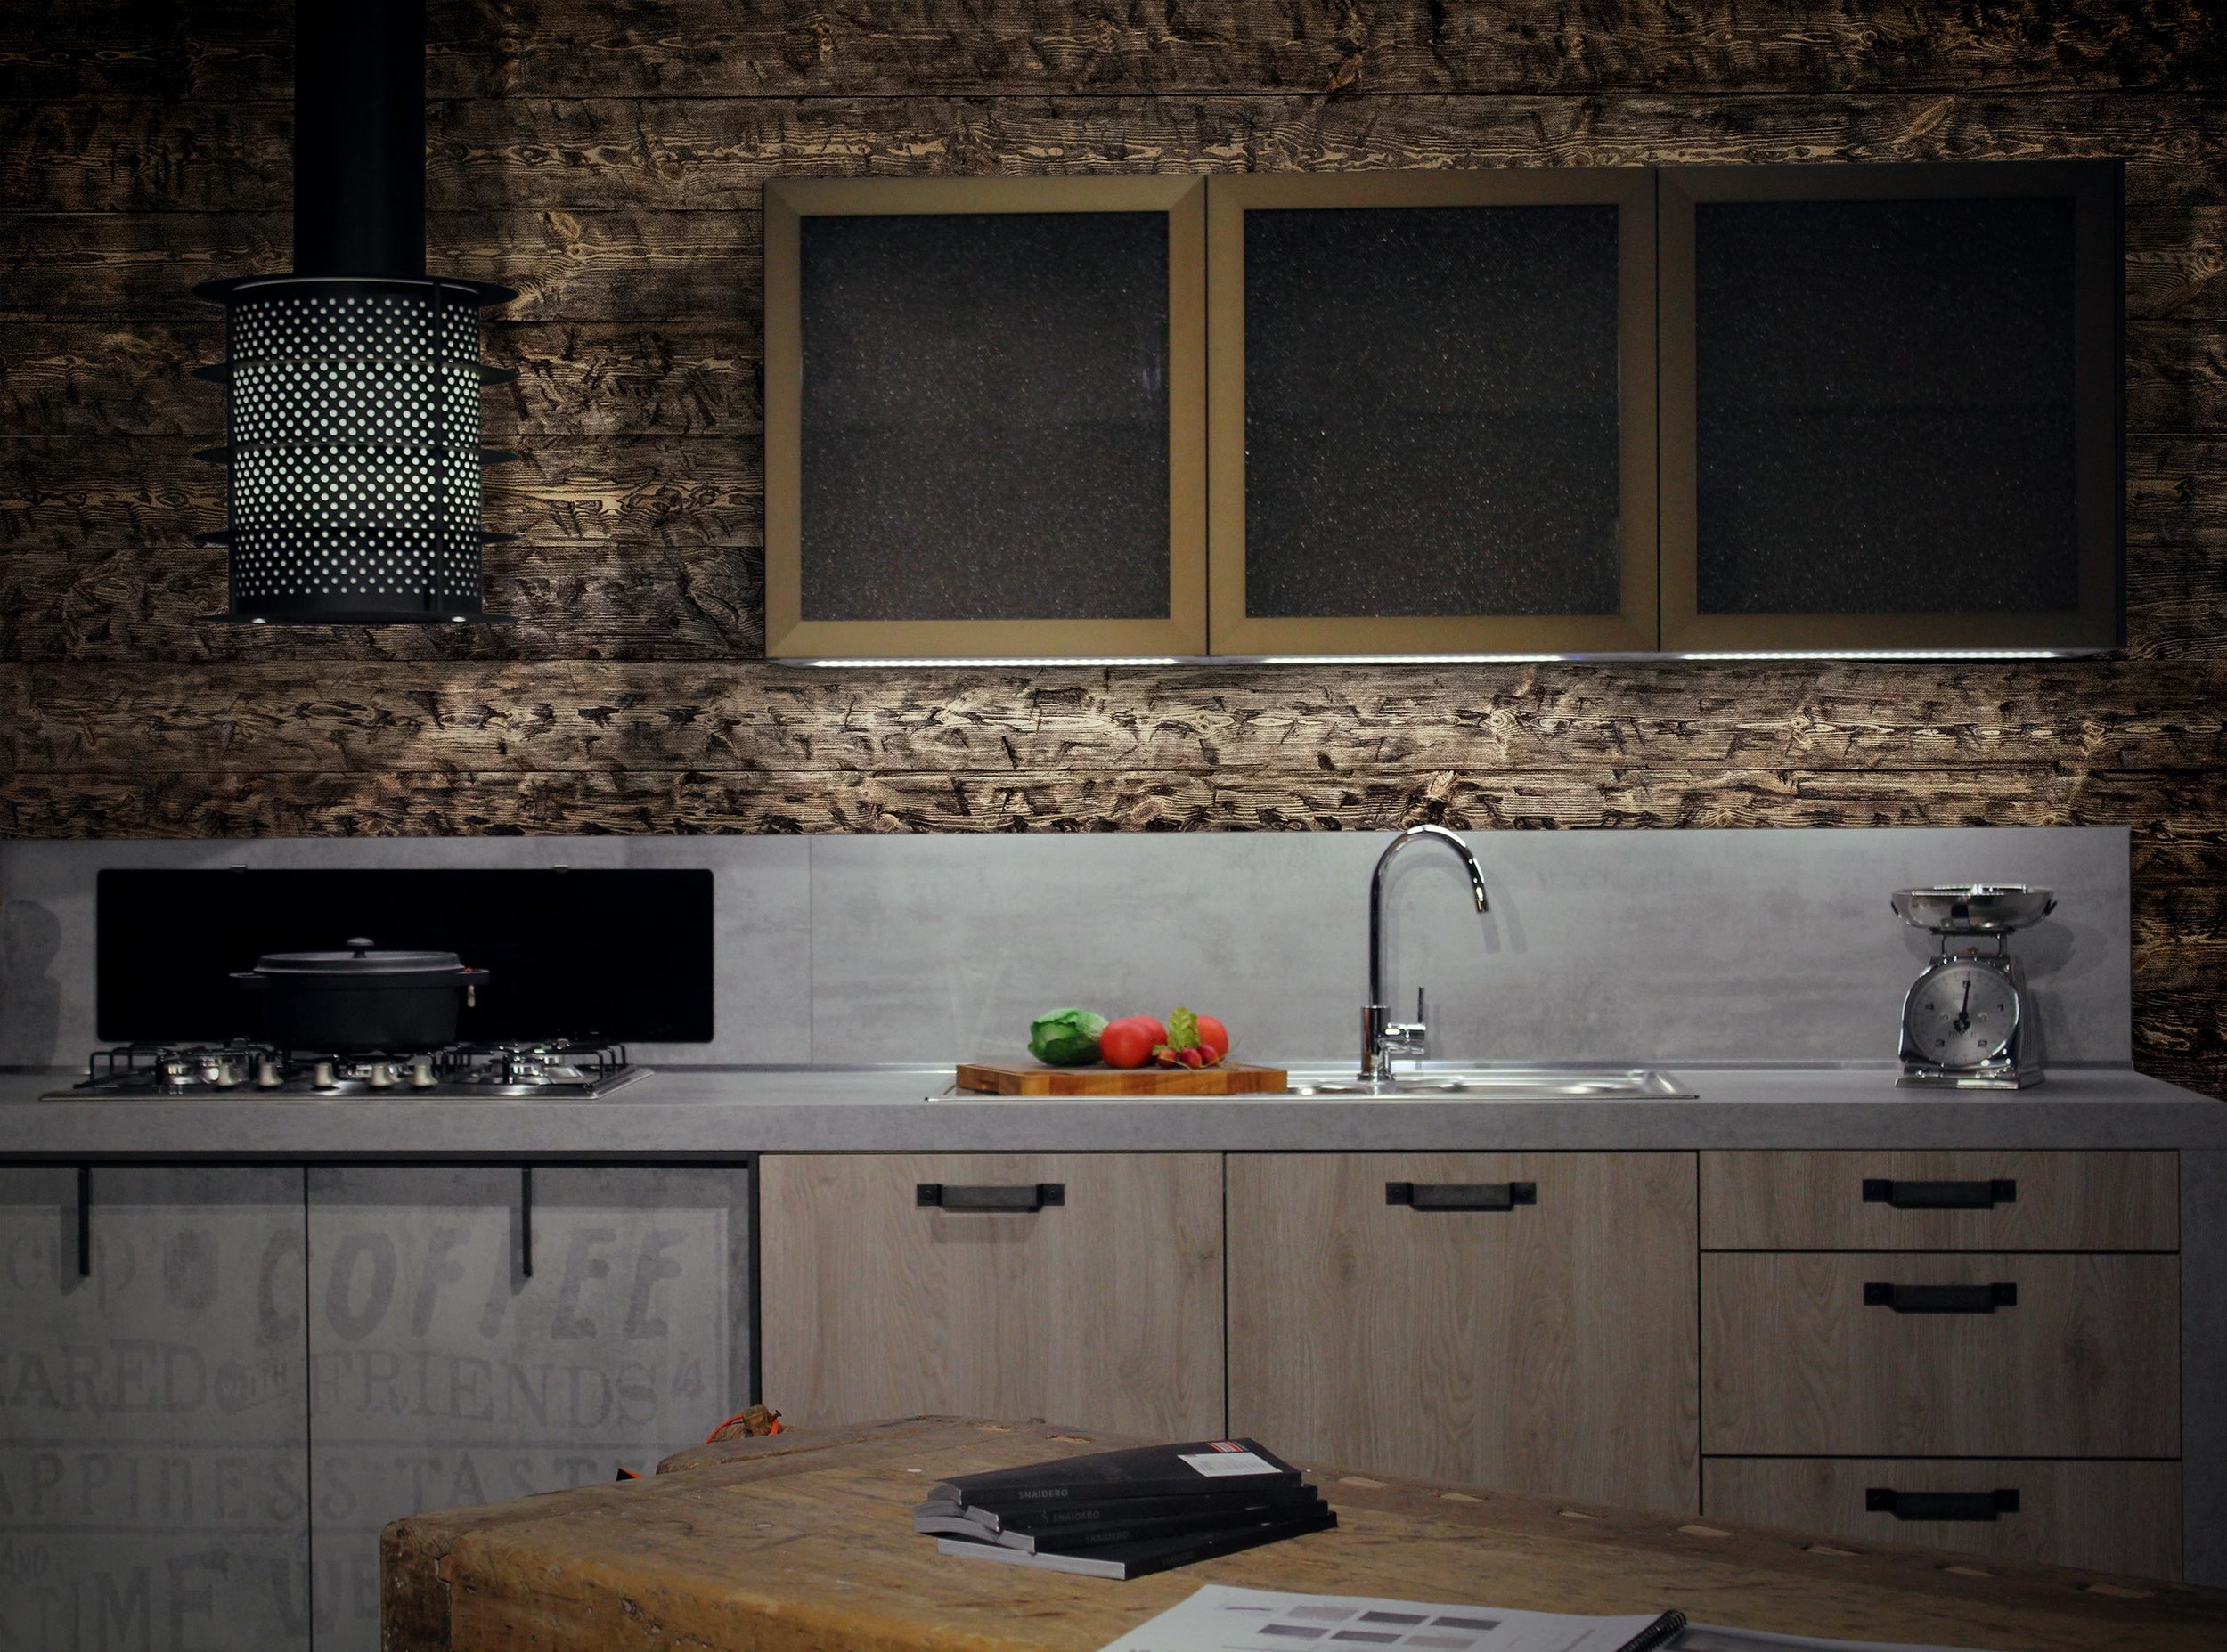 rwood_kitchen_rustic_wooden-wall.jpg